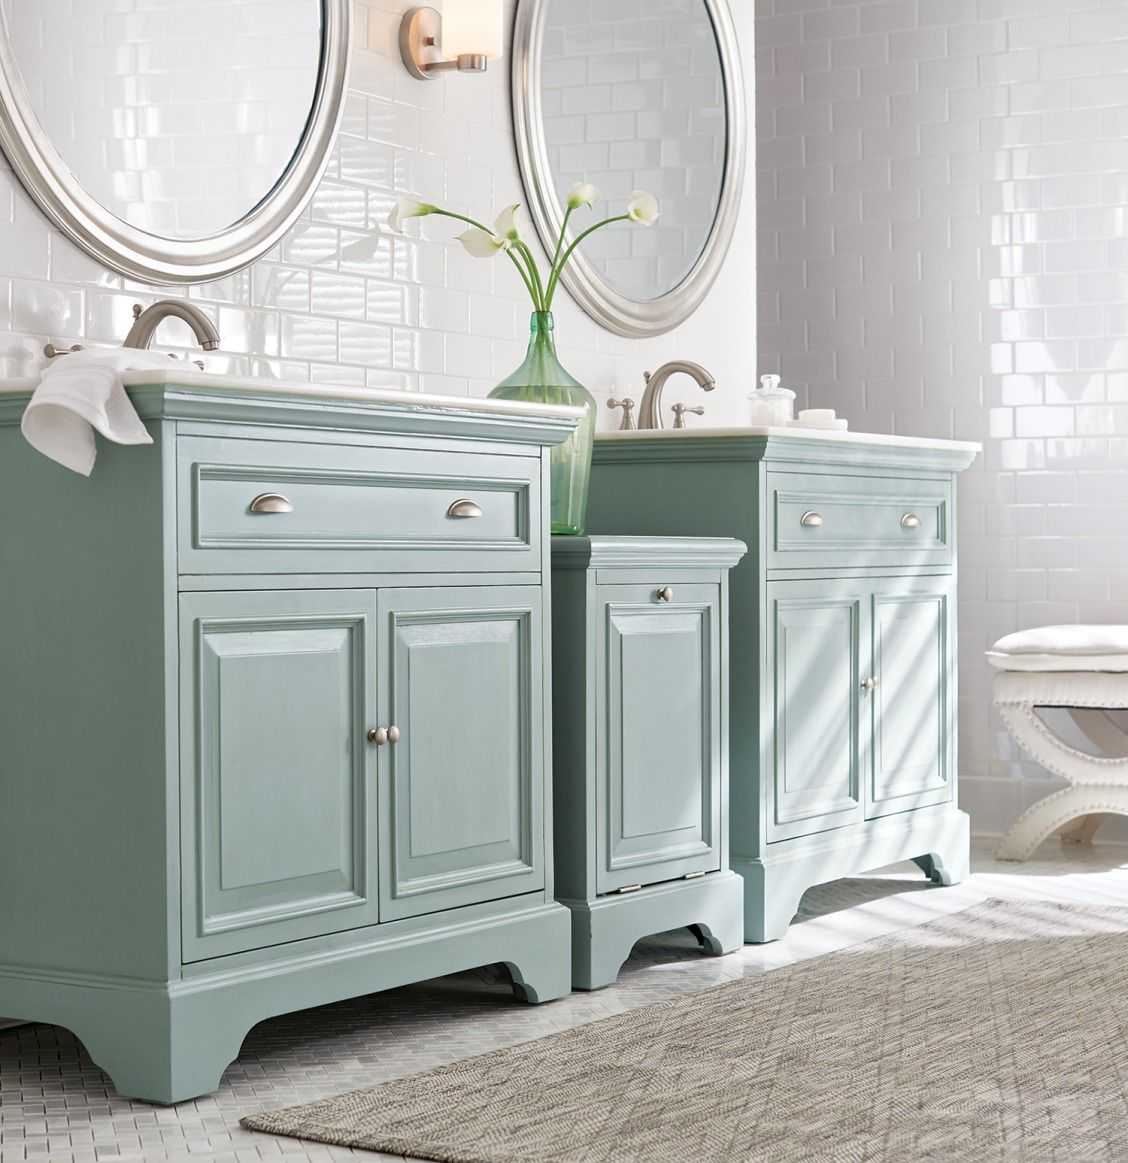 For An Unexpected Style Try Two Single Vanities Instead Of One Double Vanity In Your